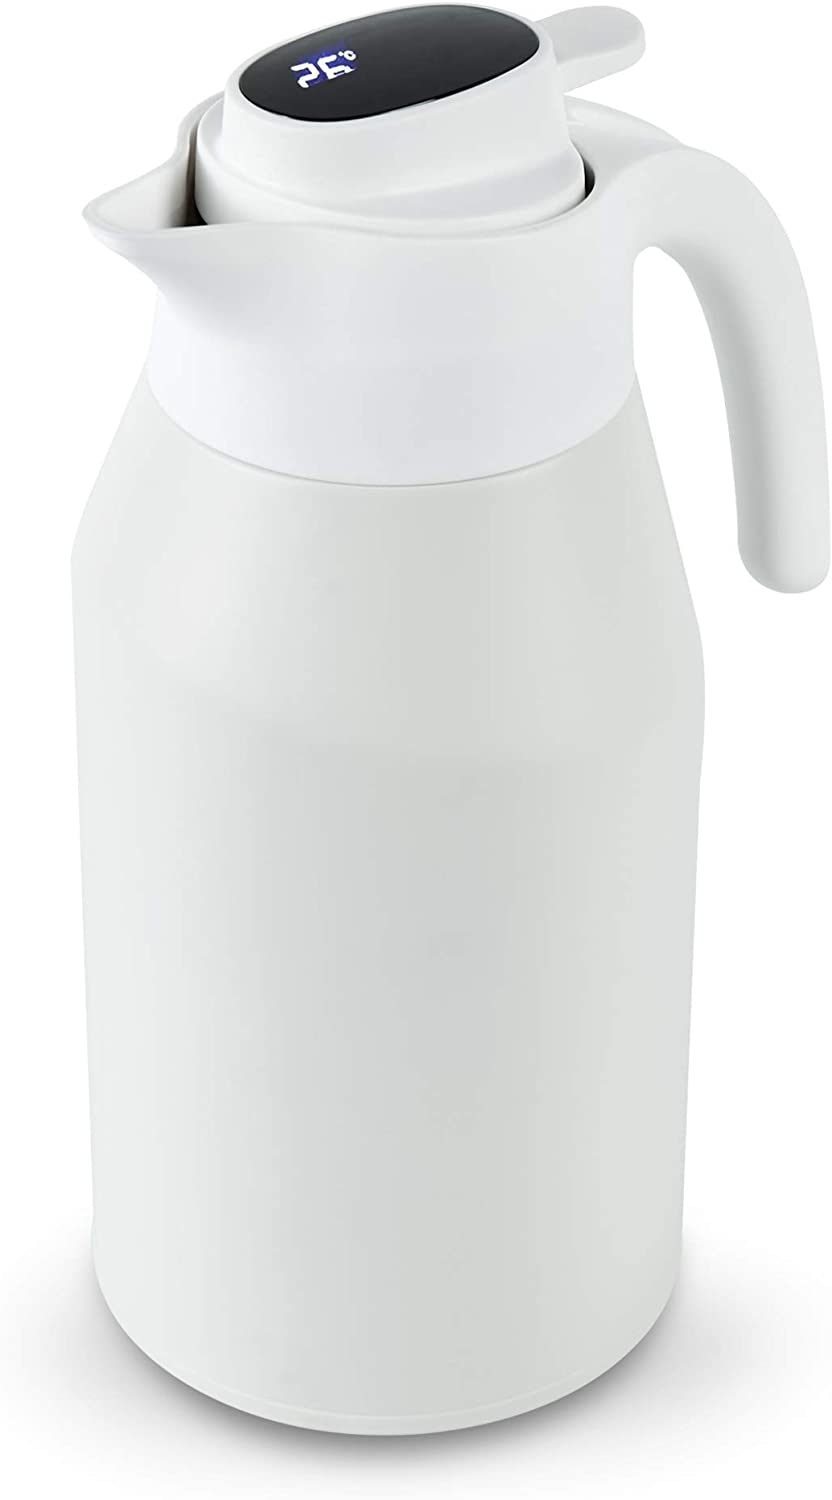 Thermal Coffee Carafe 68 oz, ROCKURWOK Stainless Steel Vacuum Thermos with Temperature Display Lid, Double Walled Insulated Flask,24 Hour Heat Retention, Water& Beverage Dispenser, White